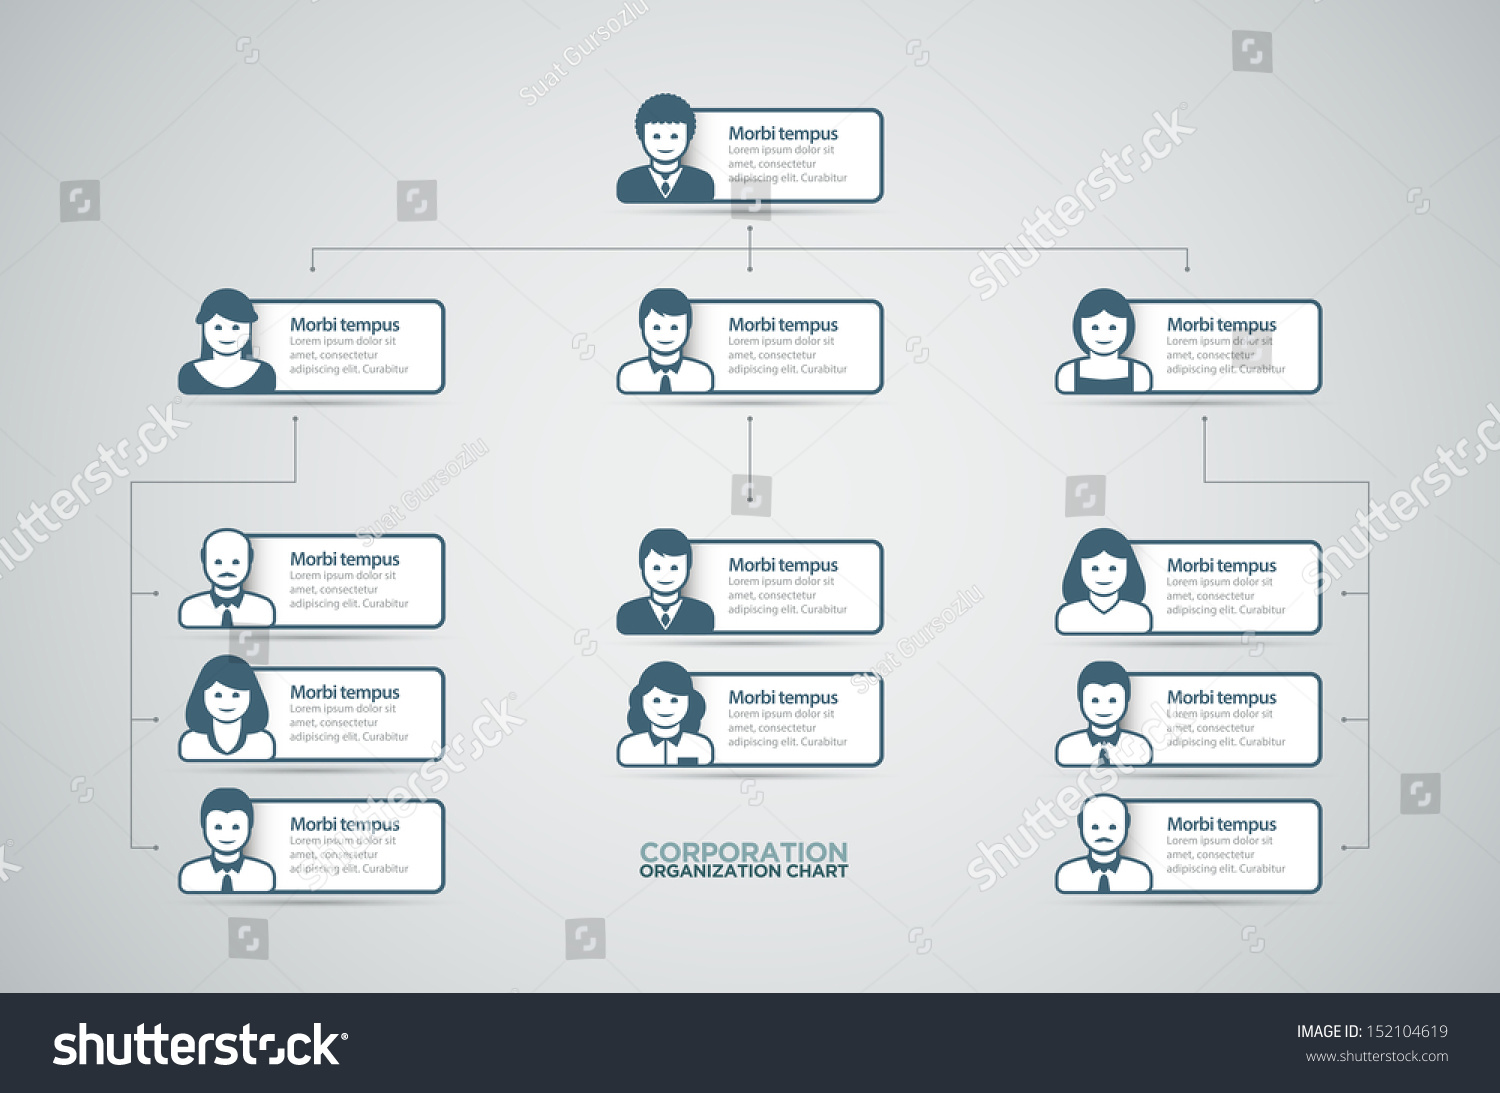 Corporate Organization Chart Business People Icons Vector – Organization Chart